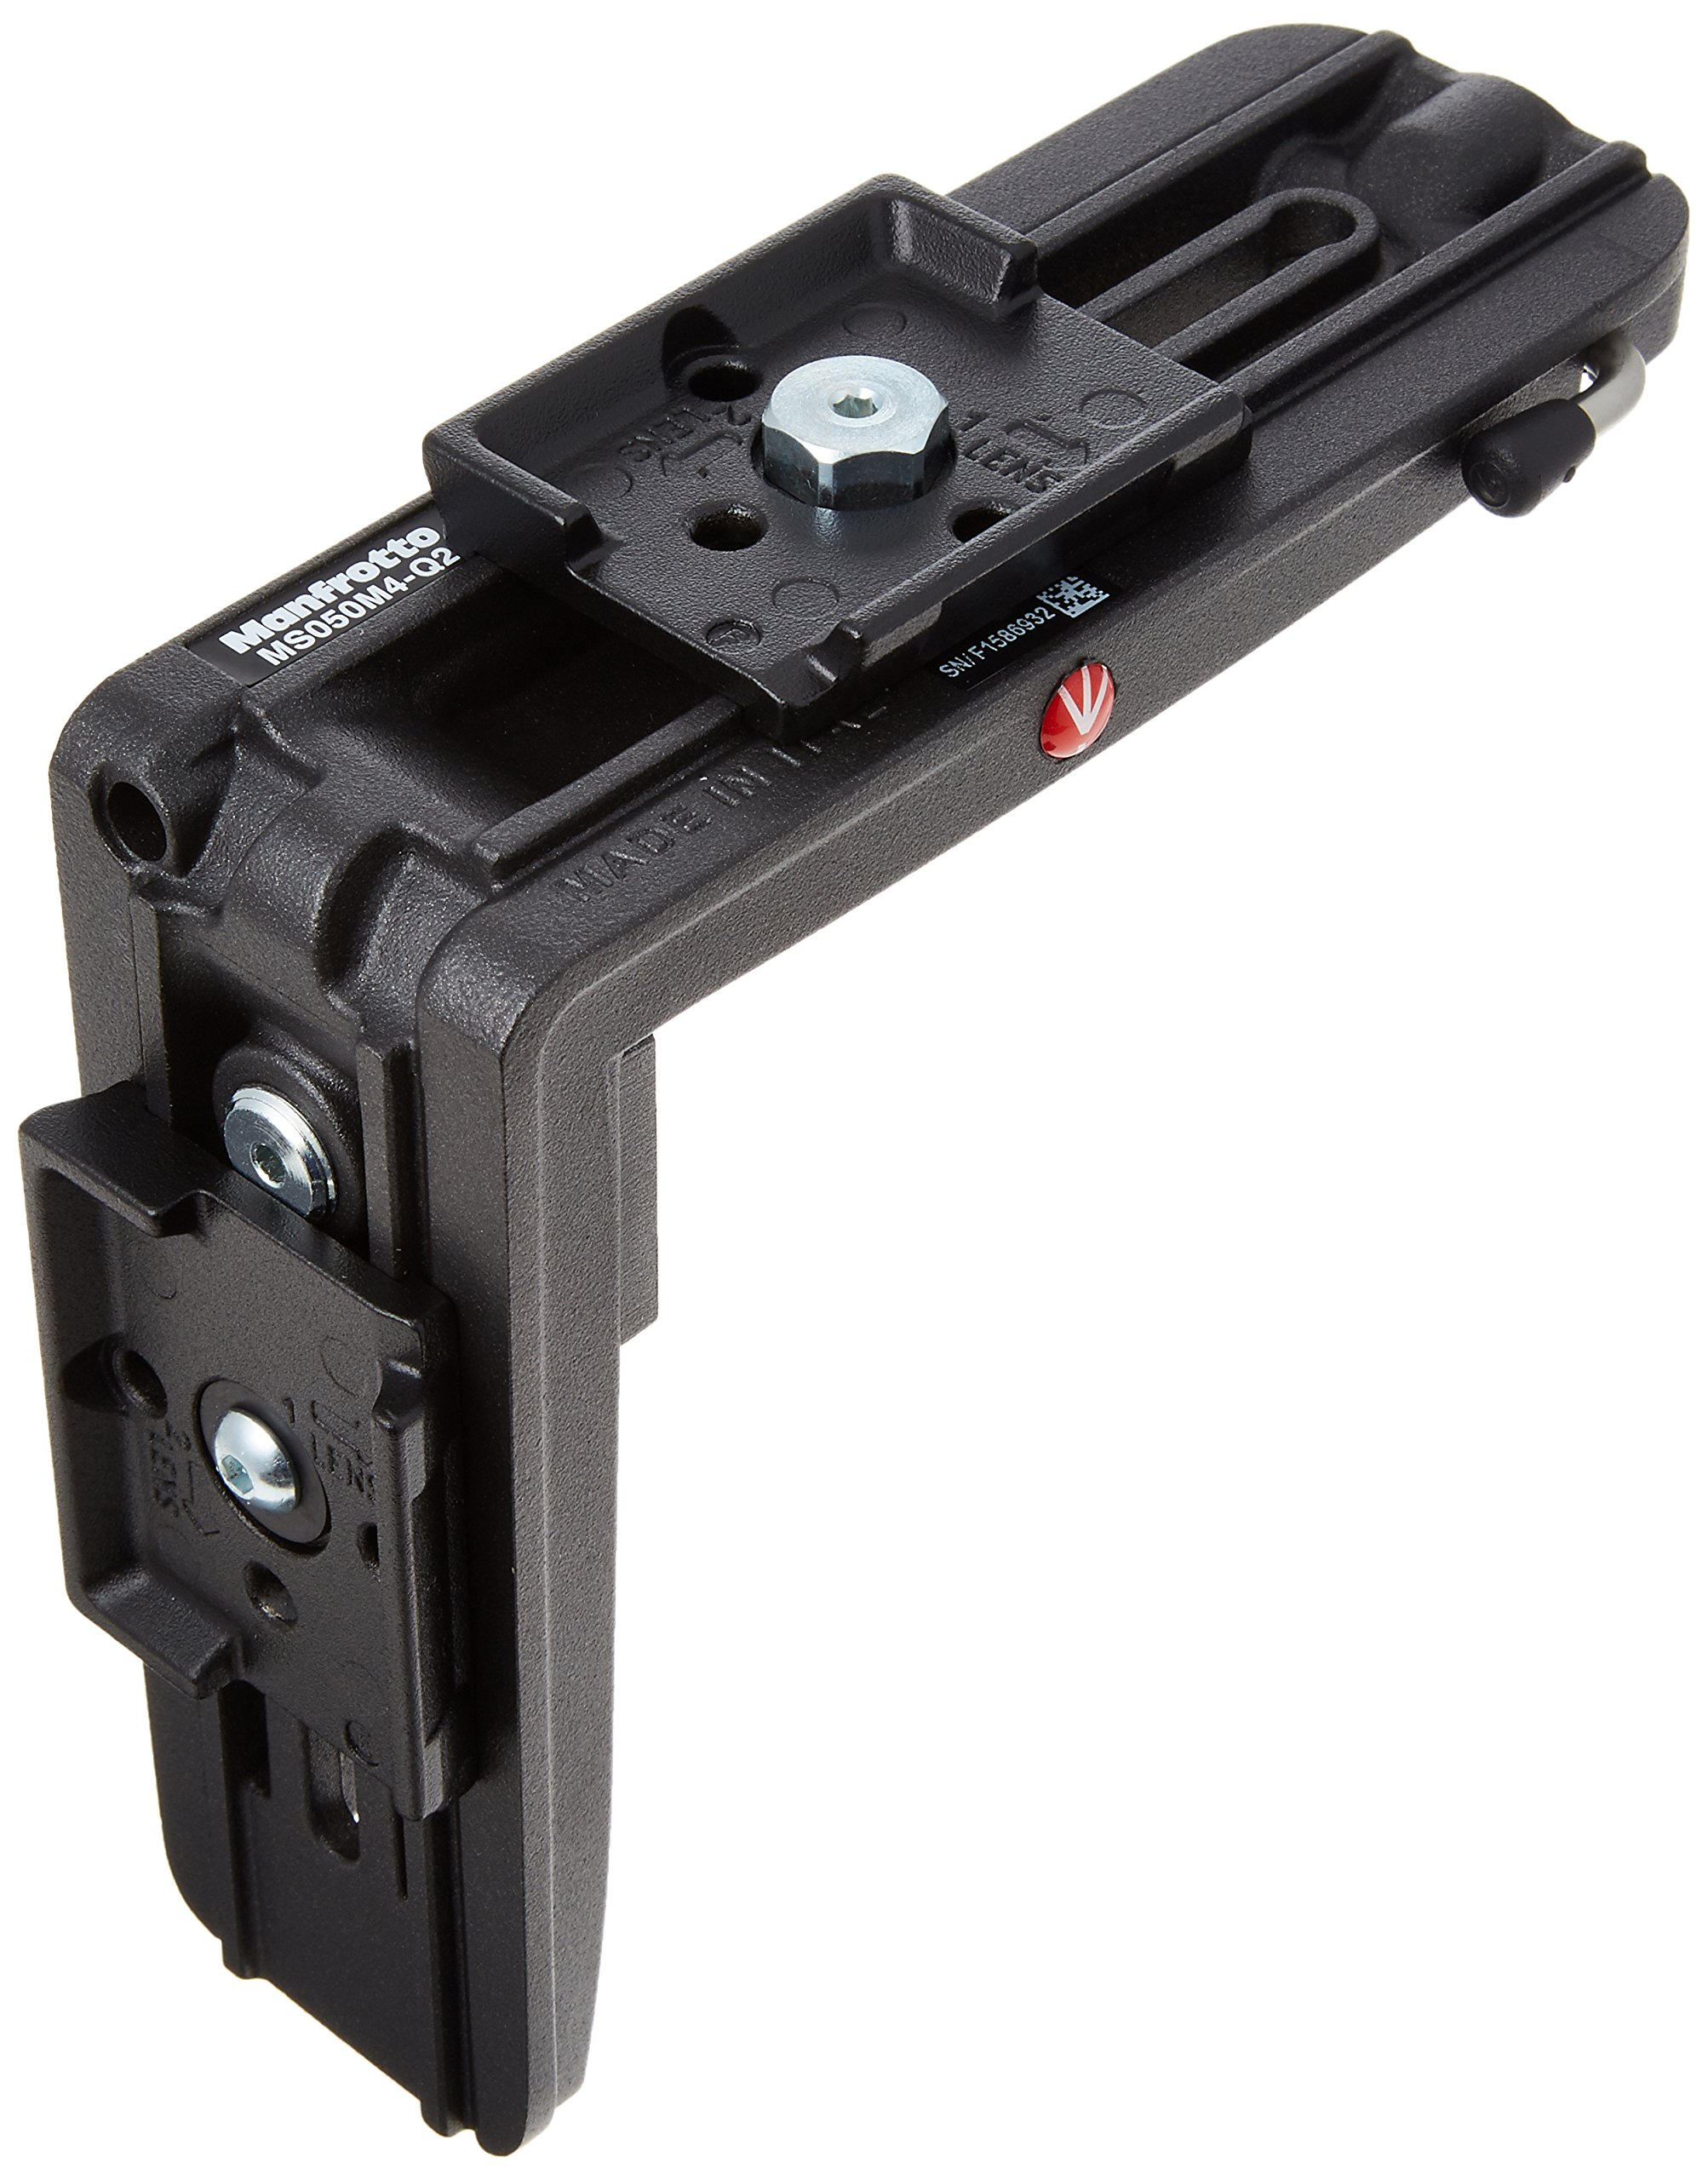 Manfrotto L Bracket Q2 MS050M4-Q2 by Manfrotto (Image #2)